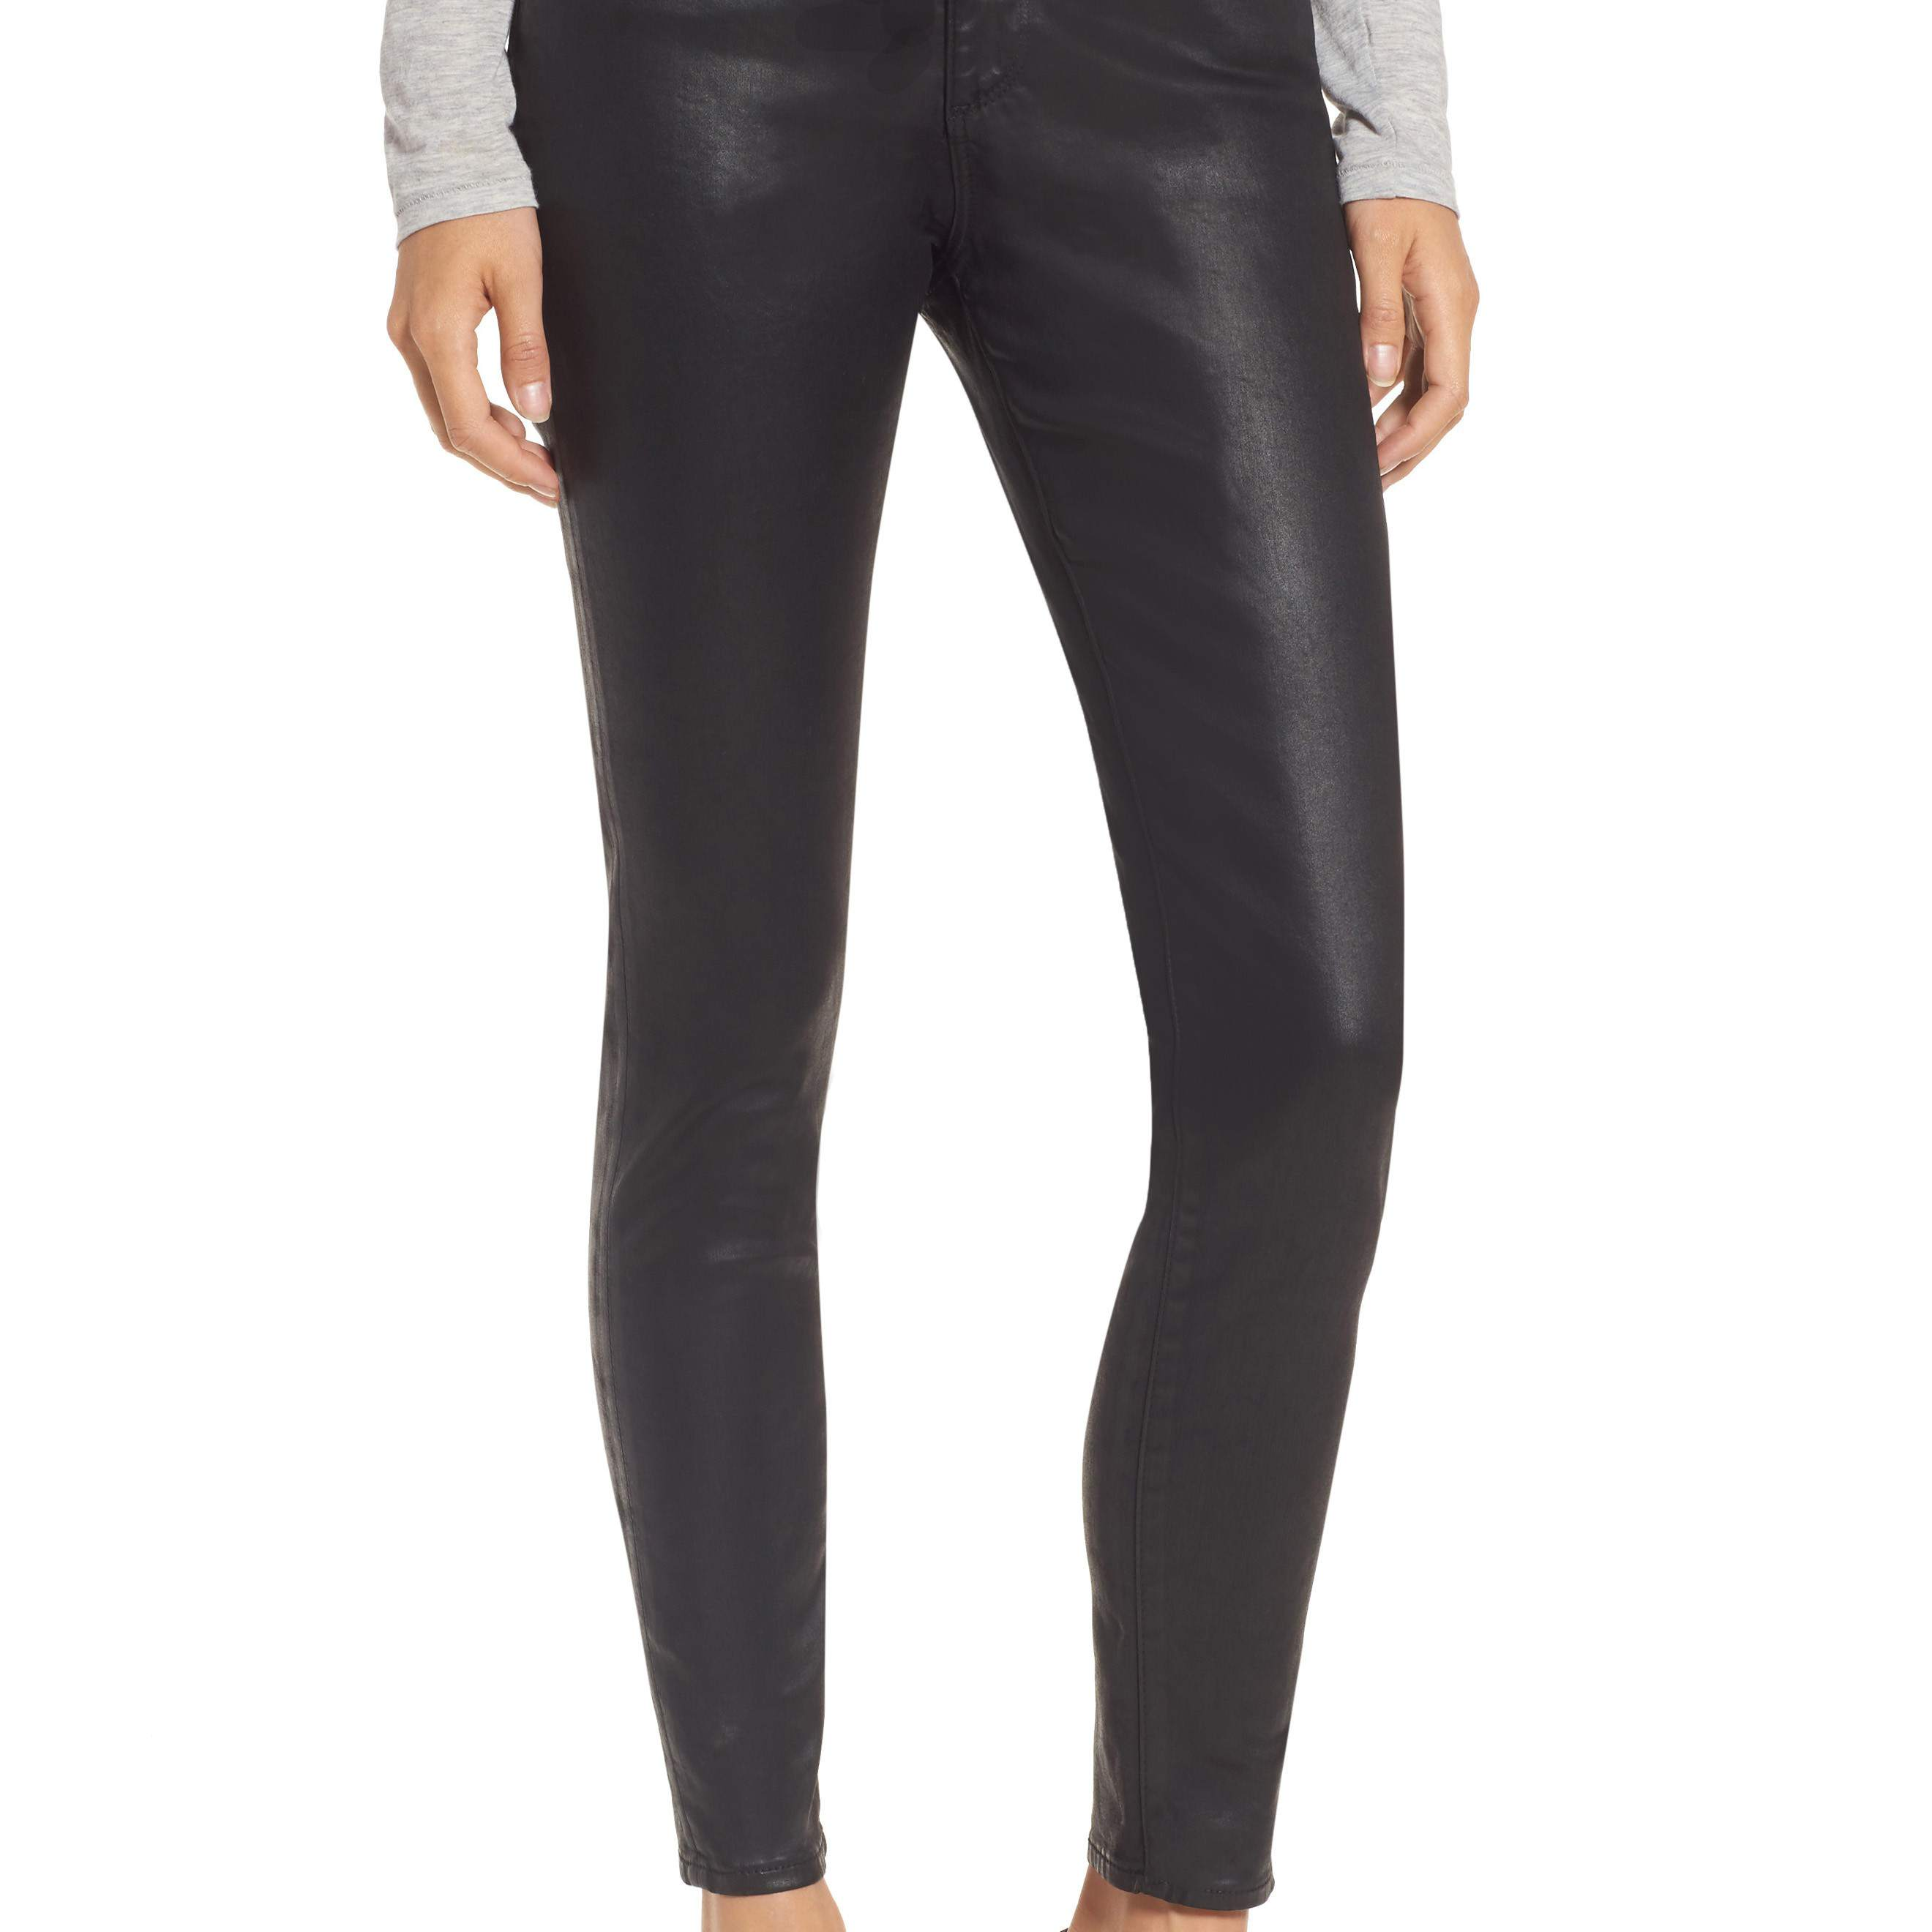 Black coated jeans for women